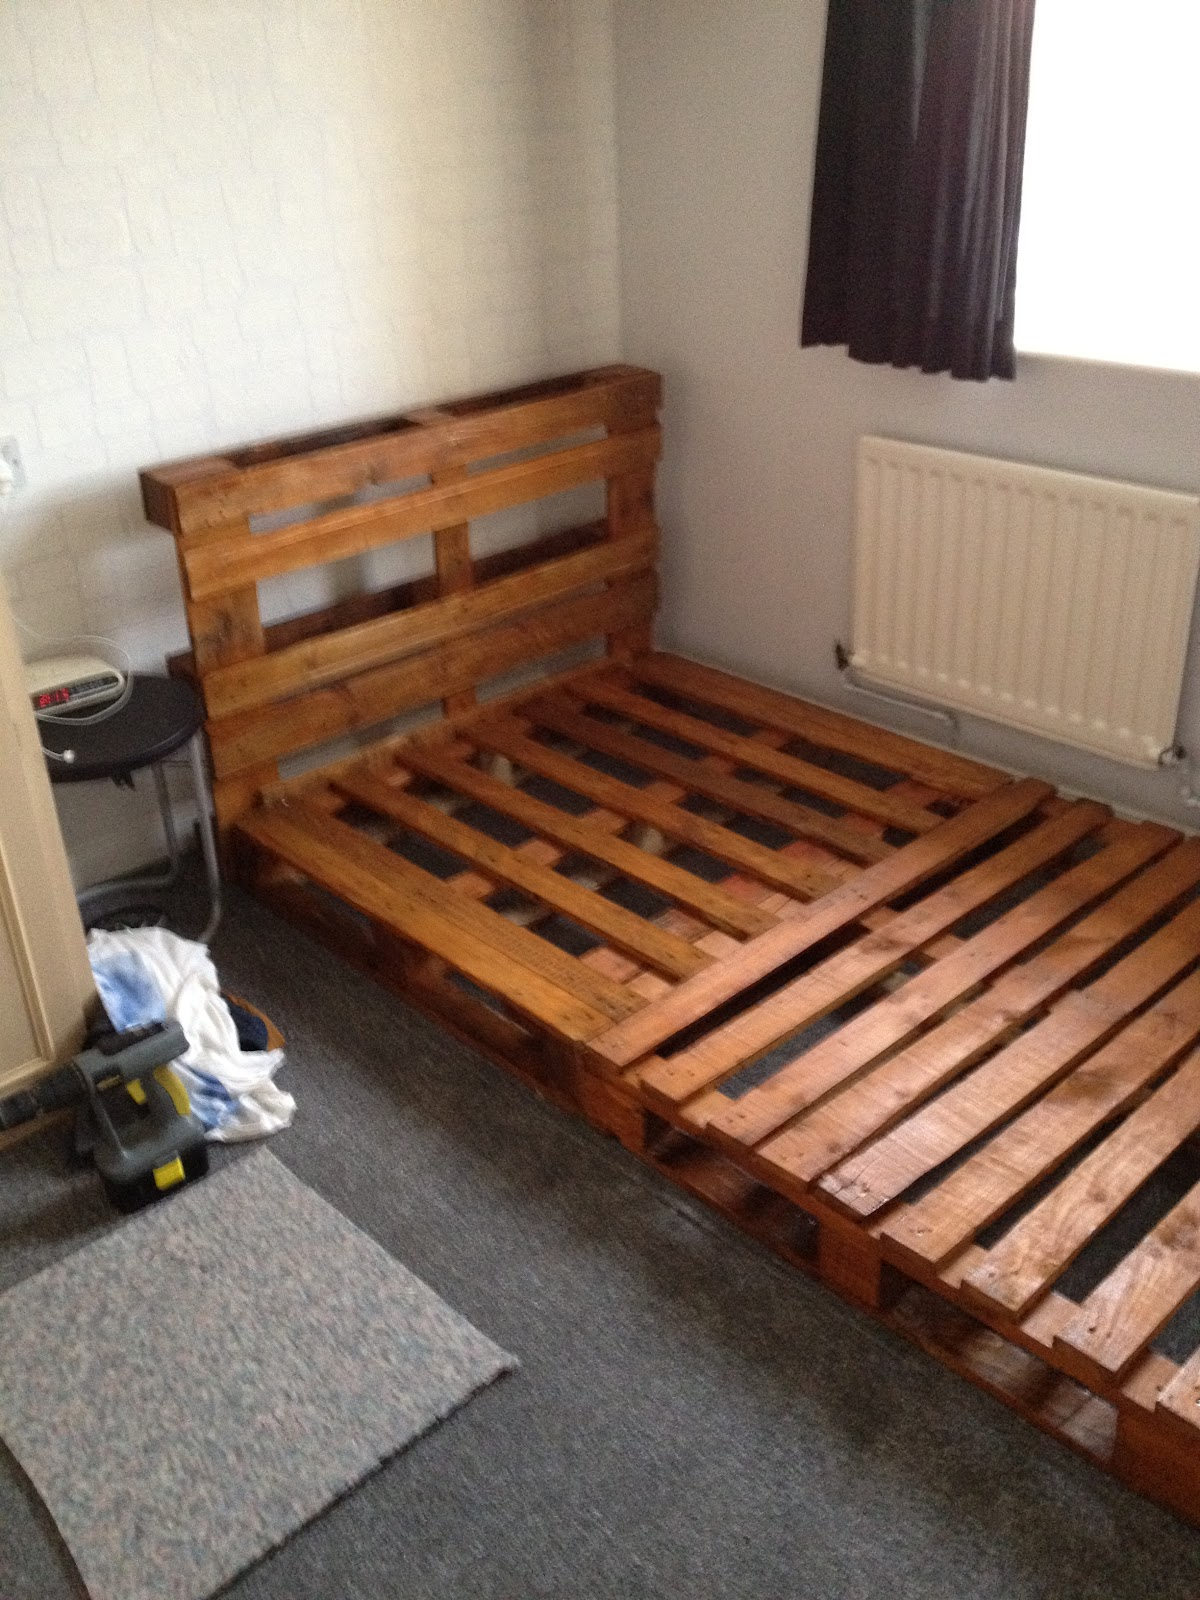 Notinabox diy pallet bed for Diy kids pallet bed